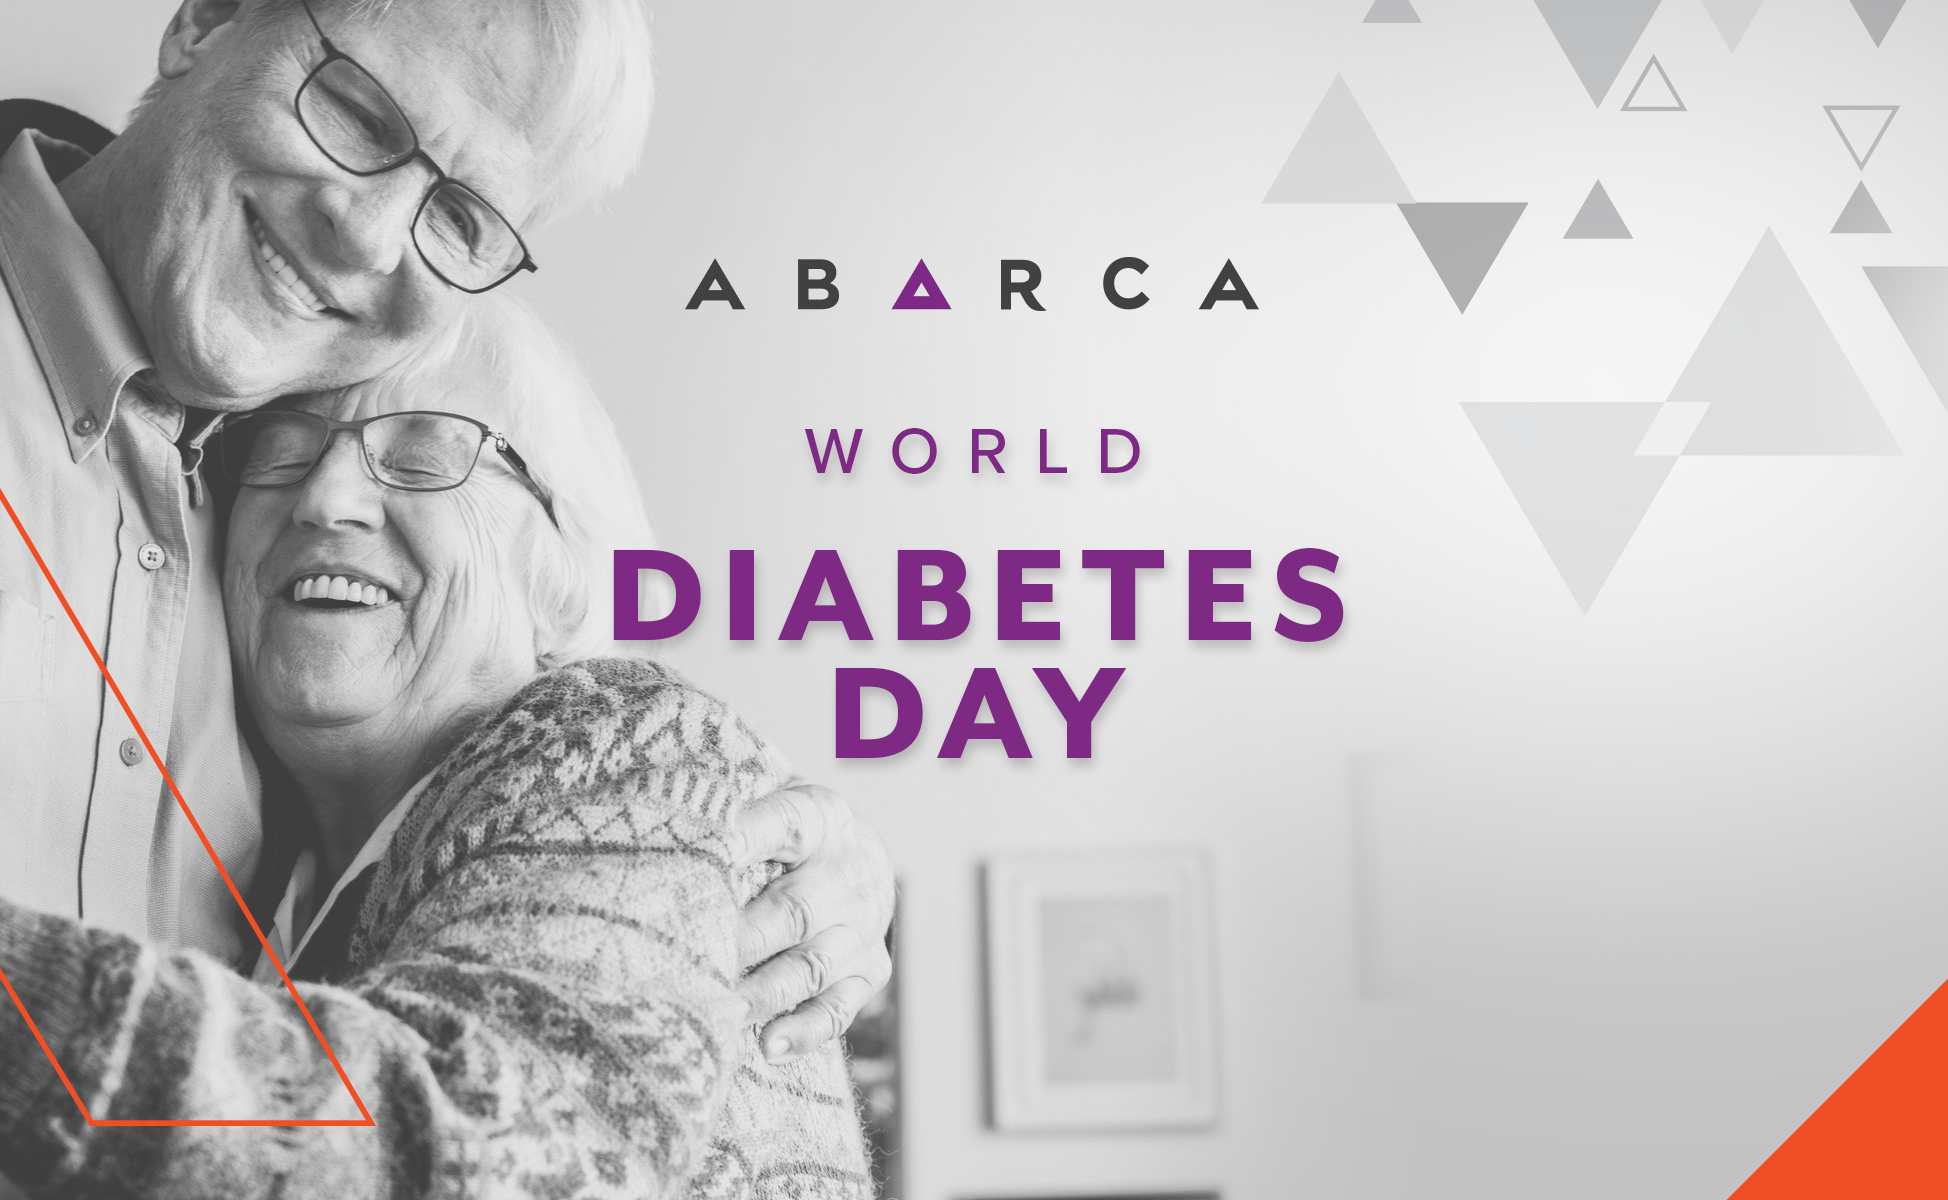 Abarca brings awareness to diabetes